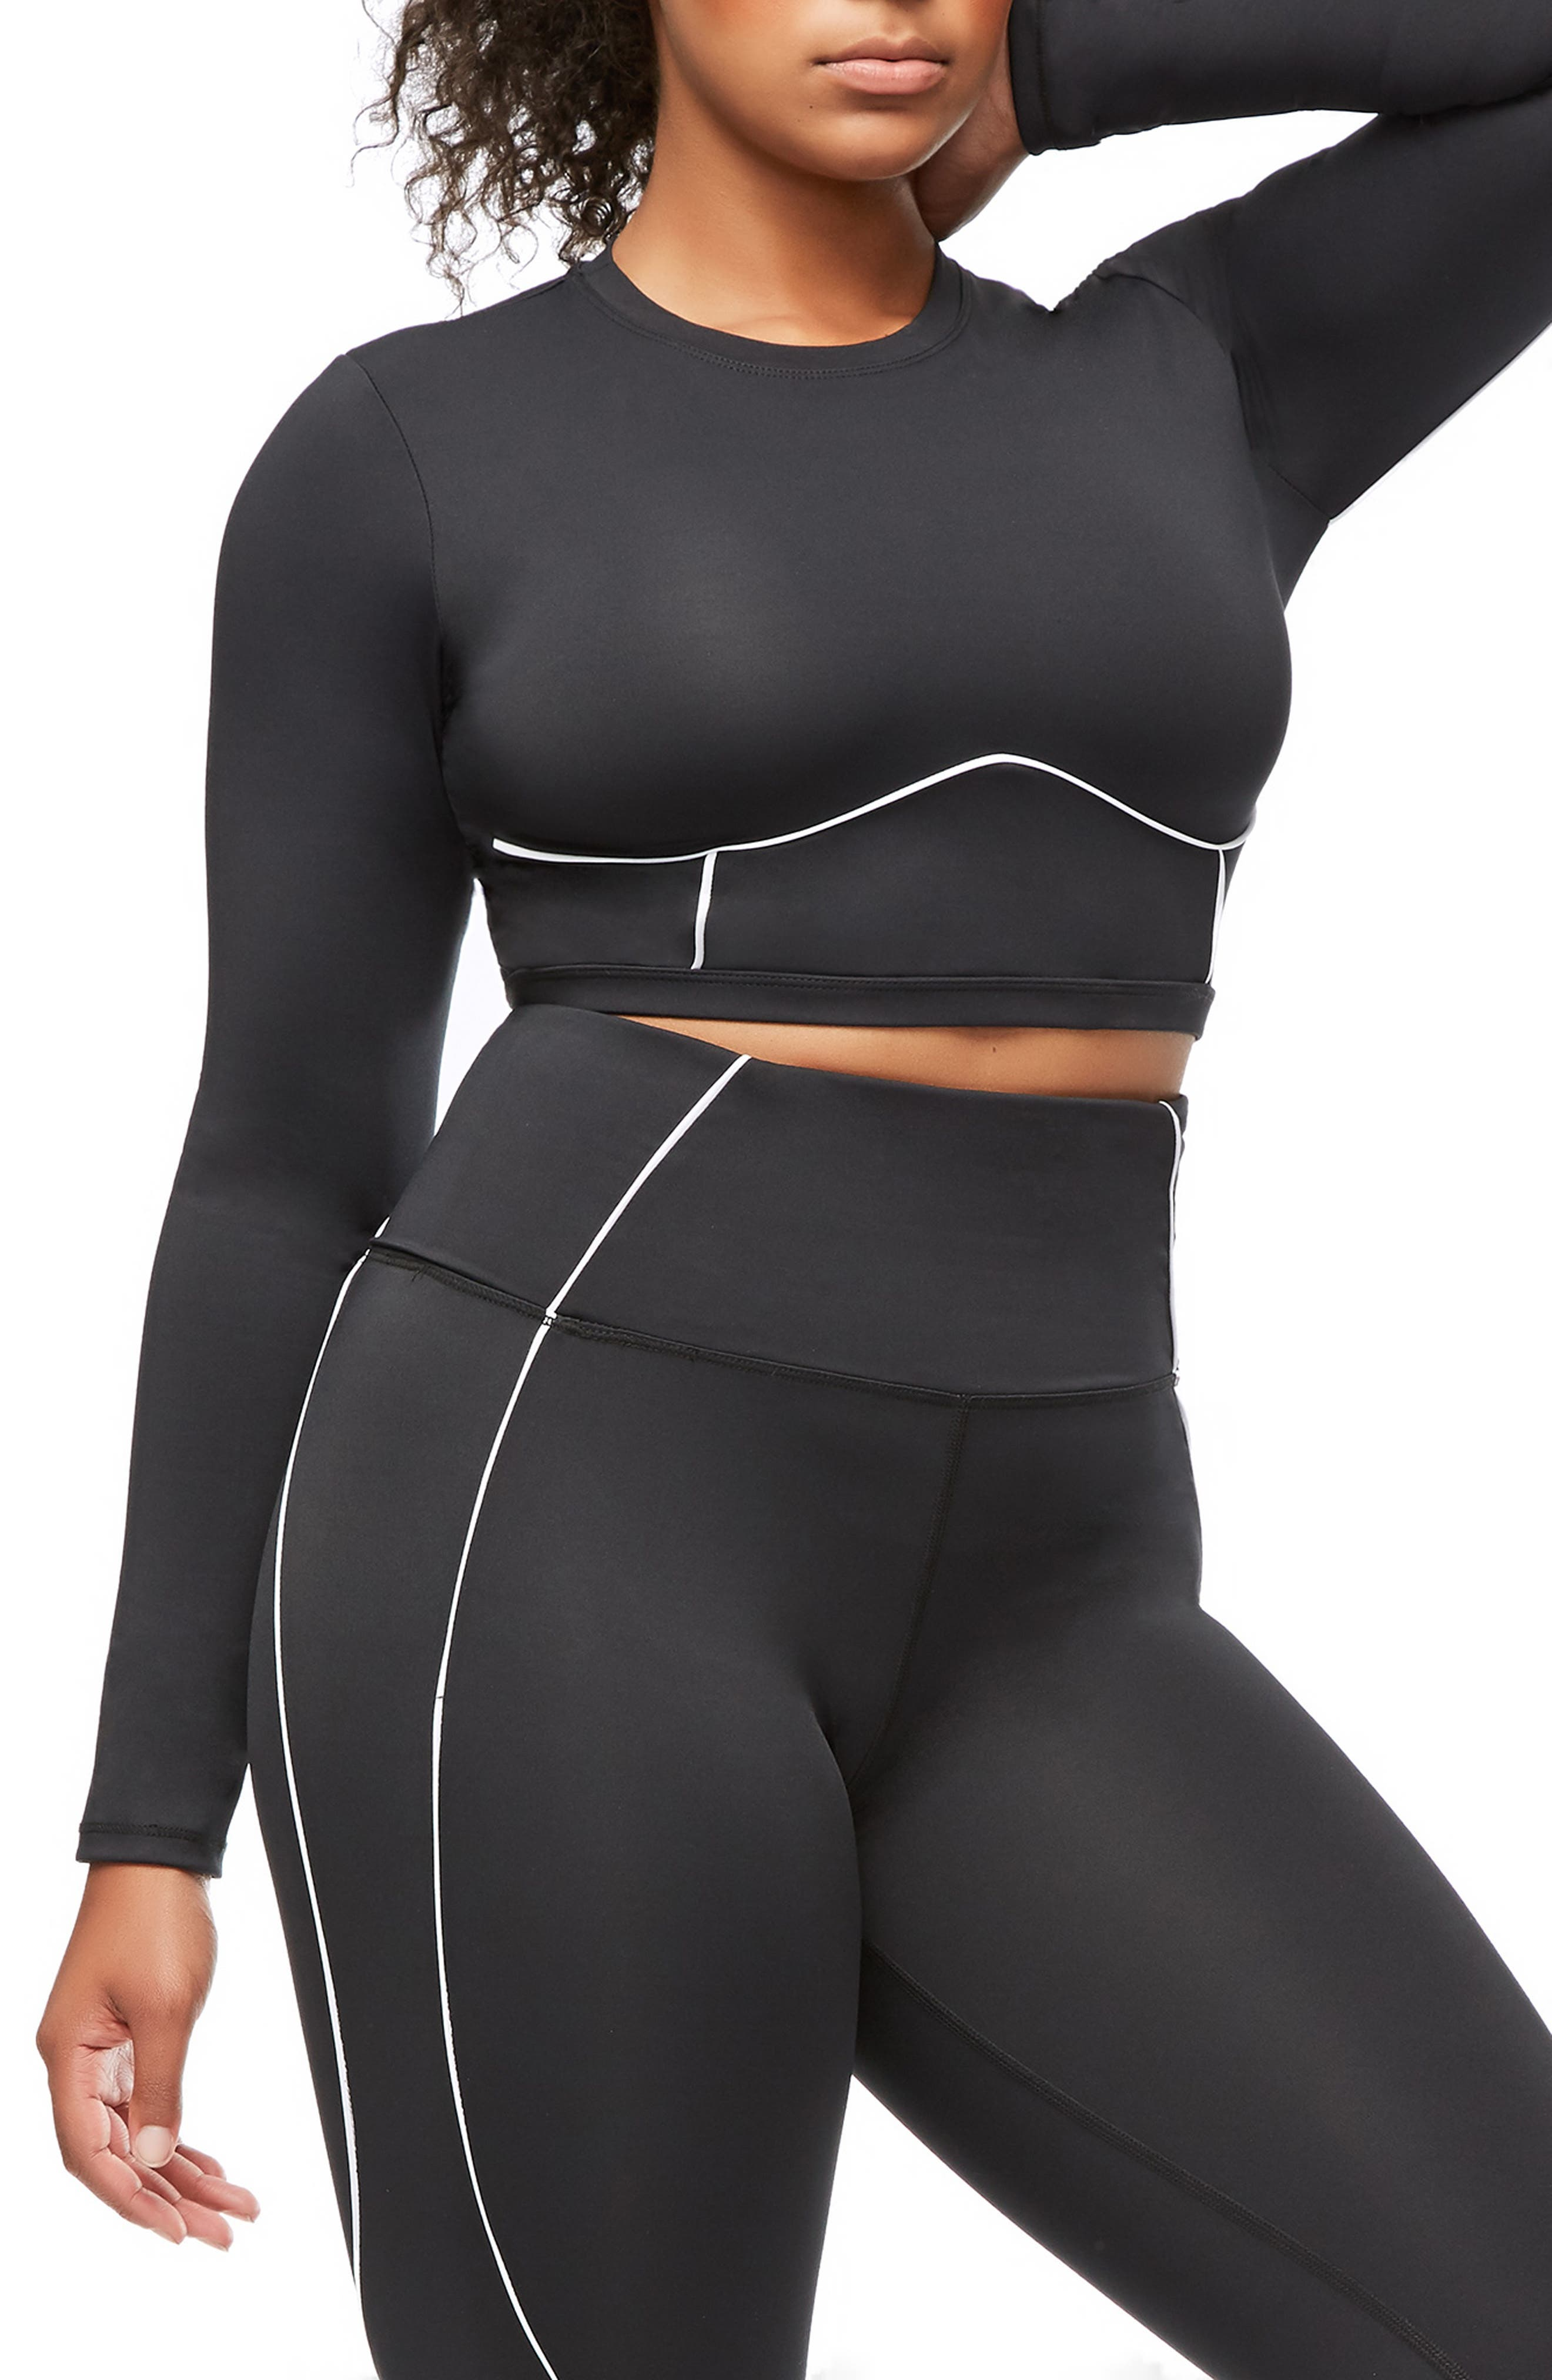 Piped Crop Top,                             Alternate thumbnail 9, color,                             BLACK001